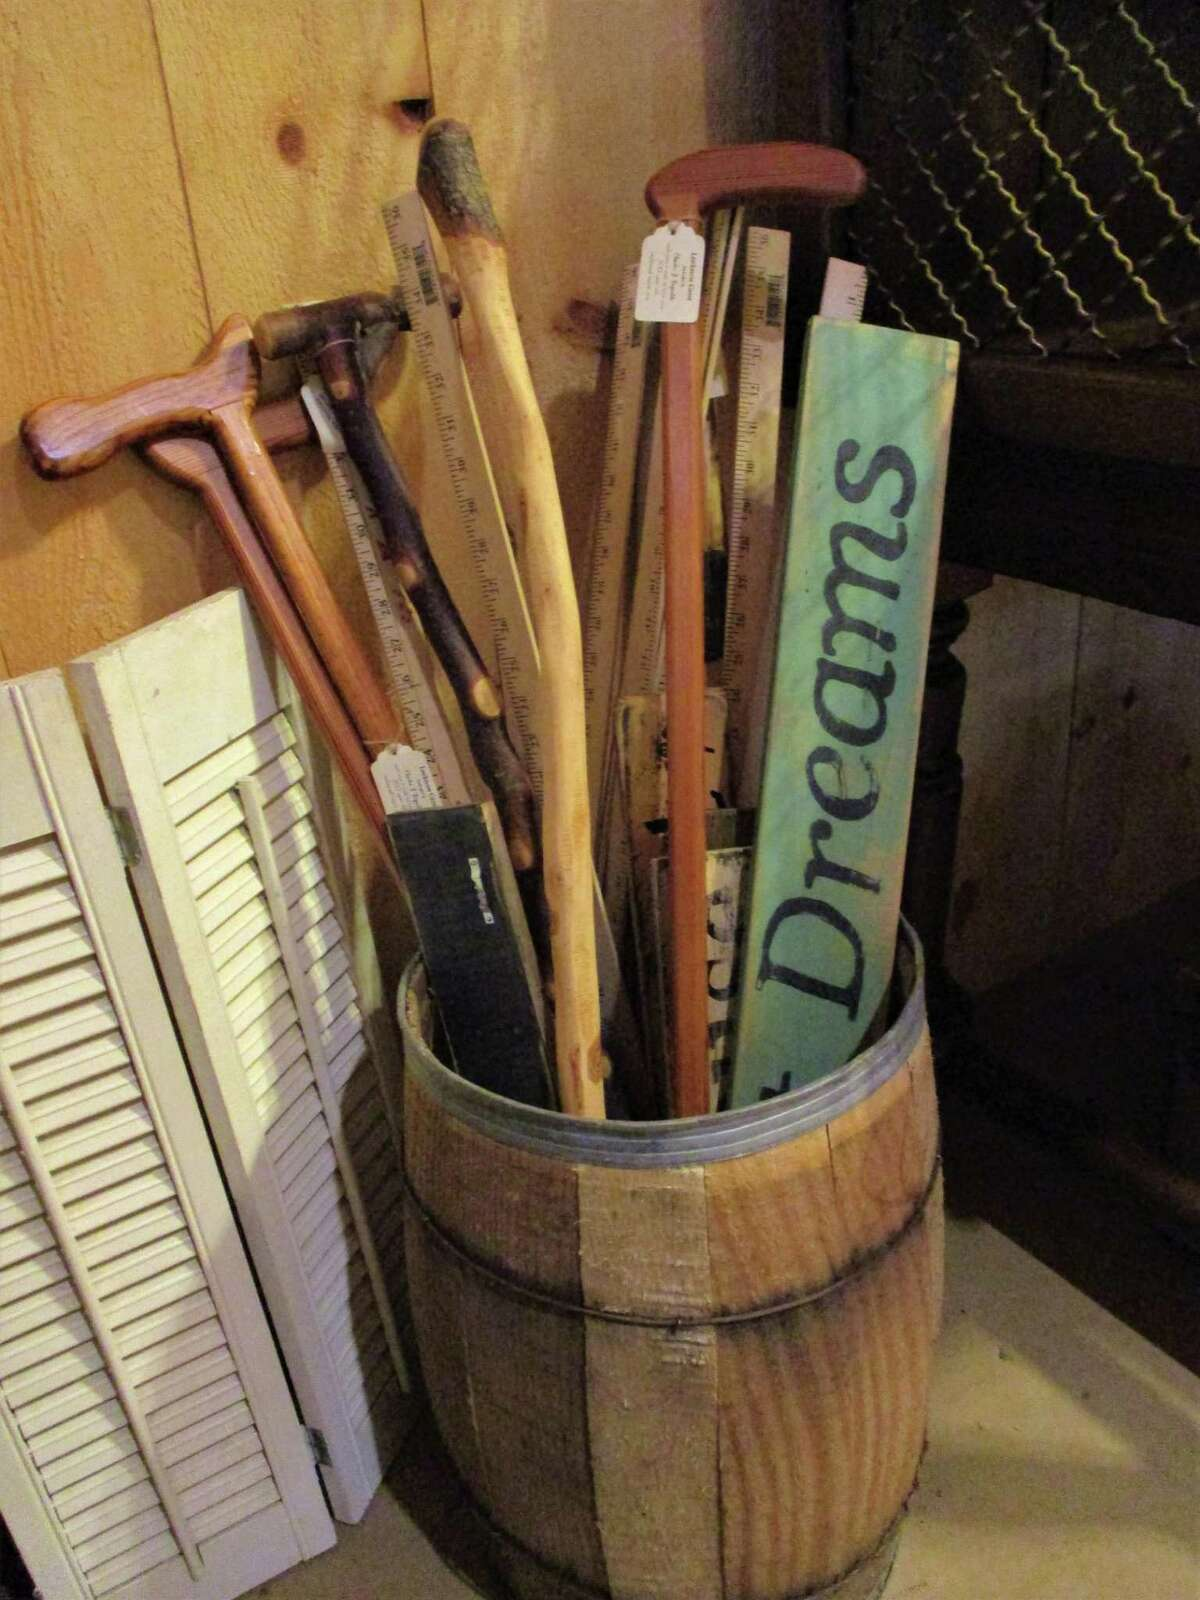 Handcrafted canes made from heart pine are part of the eclectic mix of wares at All-Wright Acres.